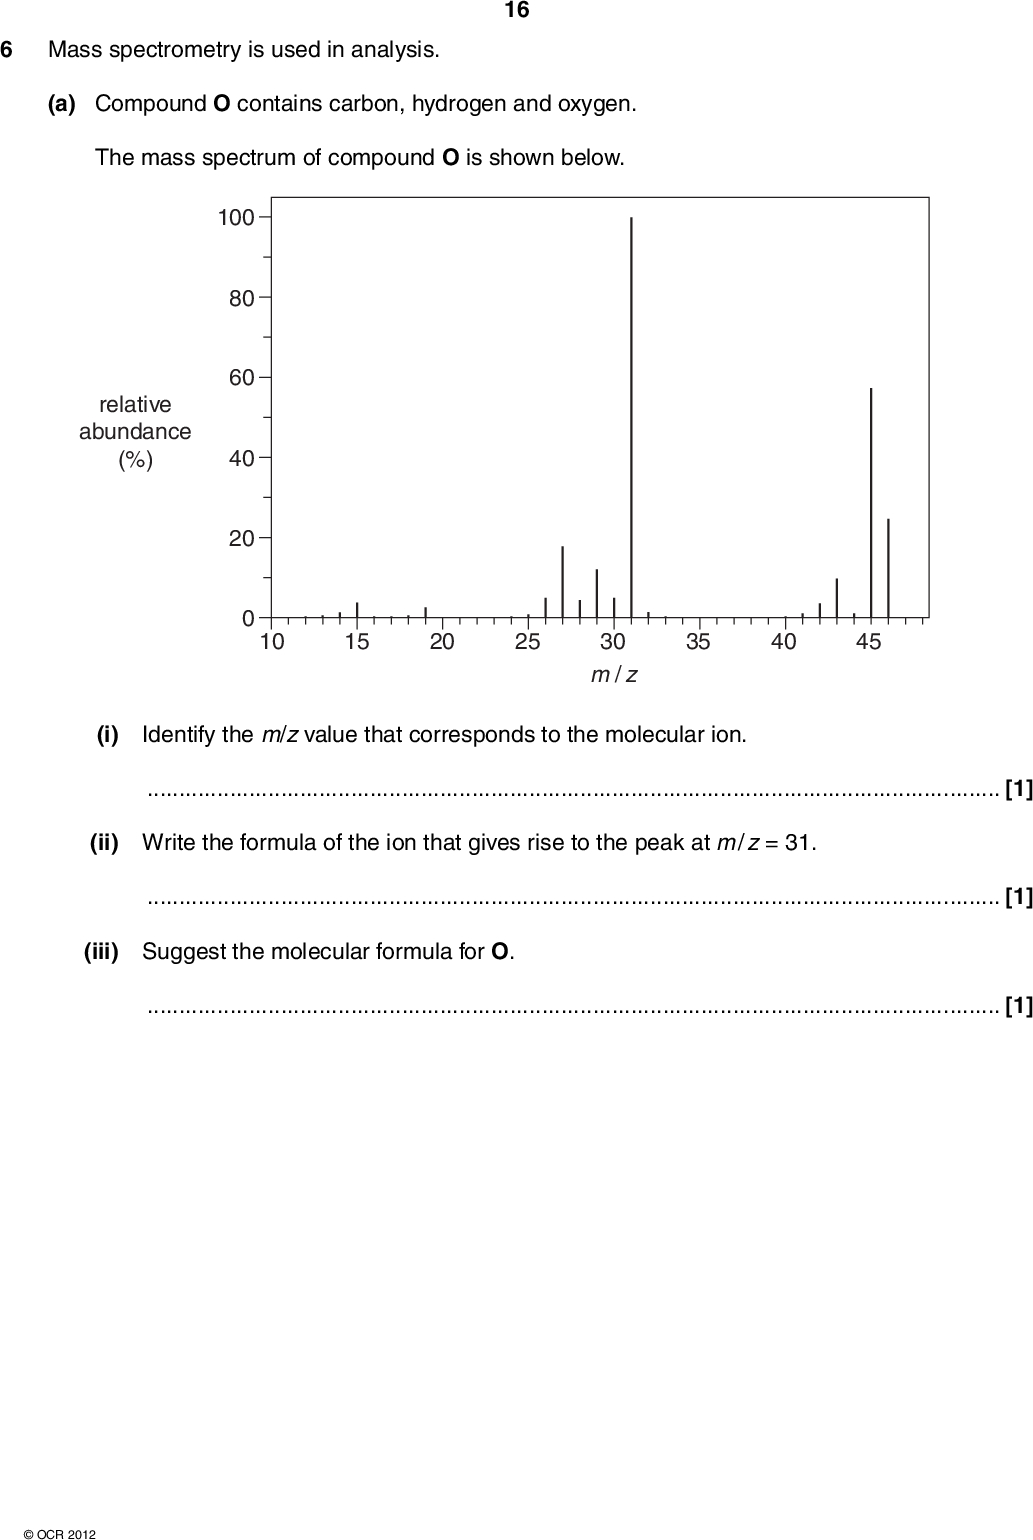 6 Mass spectrometry is used in analysis. 16 (a) Compound O contains carbon, hydrogen and oxygen. The mass spectrum of compound O is shown below. 100 80 60 40 20 relative abundance (%) 10 15 20 25 35 40 45 30 m / z (i) Identify the m/z value that corresponds to the molecular ion.[1] (ii) Write the formula of the ion that gives rise to the peak at m / z = 31.[1] (iii) Suggest the molecular formula for O.[1]OCR 2012<br />  (b) A scientist analyses a sample of Moon rock. She uses mass spectrometry to find out which metal the sample contains. 17 The mass spectrum of the sample shows m/z peaks as shown in the table. m/z value percentage abundance (%) 63 65 72.2 27.8 Positive ions, X+, of the metal were responsible for the two m/z peaks. Identify the metal X by calculating its relative atomic mass to one decimal place. relative atomic mass of X =metal X =[3] [Total: 6]OCR 2012 Turn over<br />